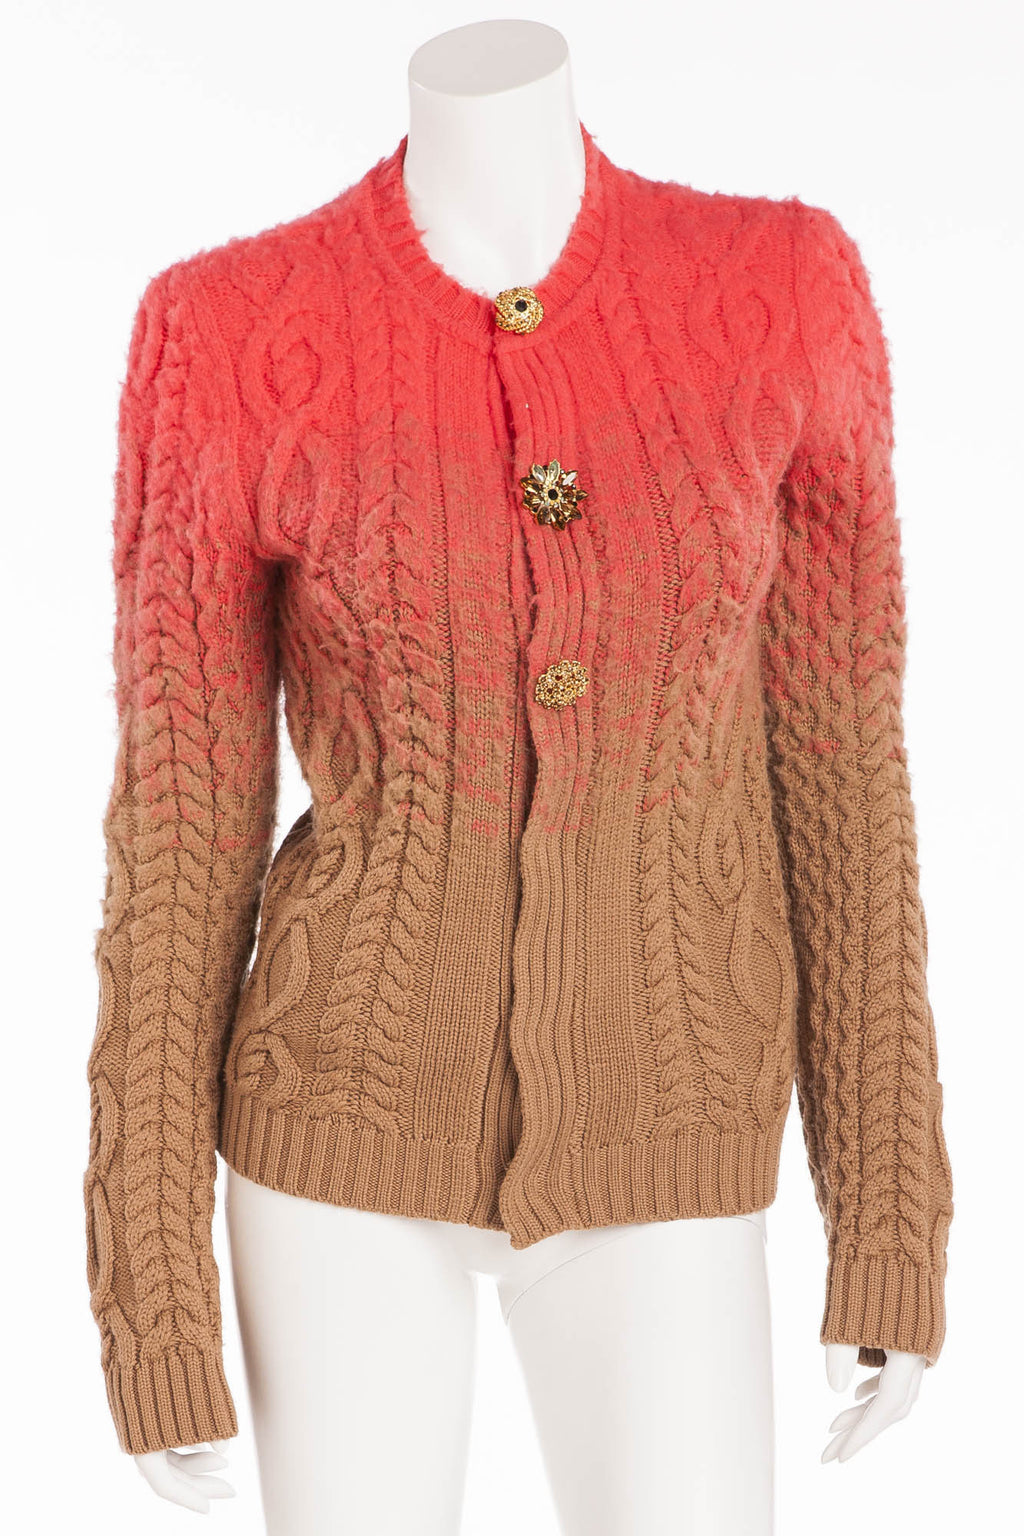 Dsquared2 - New Coral and Brown Ombre Cardigan with Crystal Buttons - L